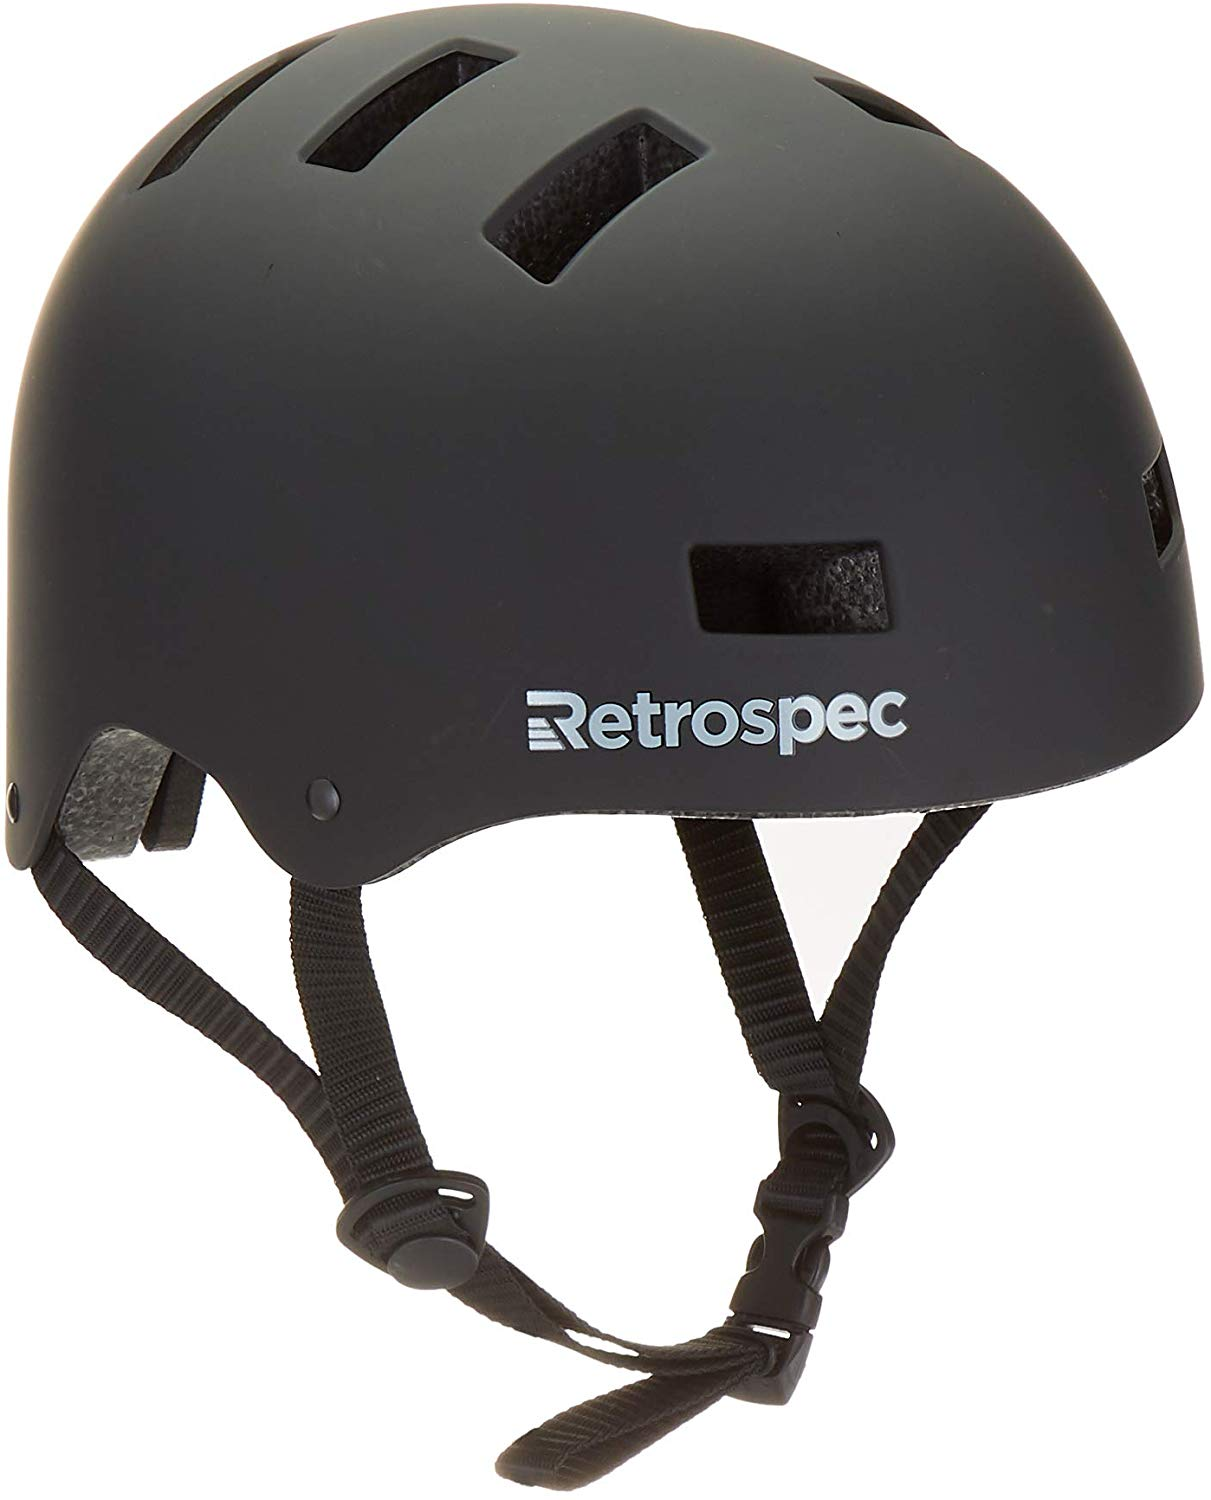 Retrospec CM-1 Classic Commuter Bike Skate Multi-Sport Helmet with 10 Vents